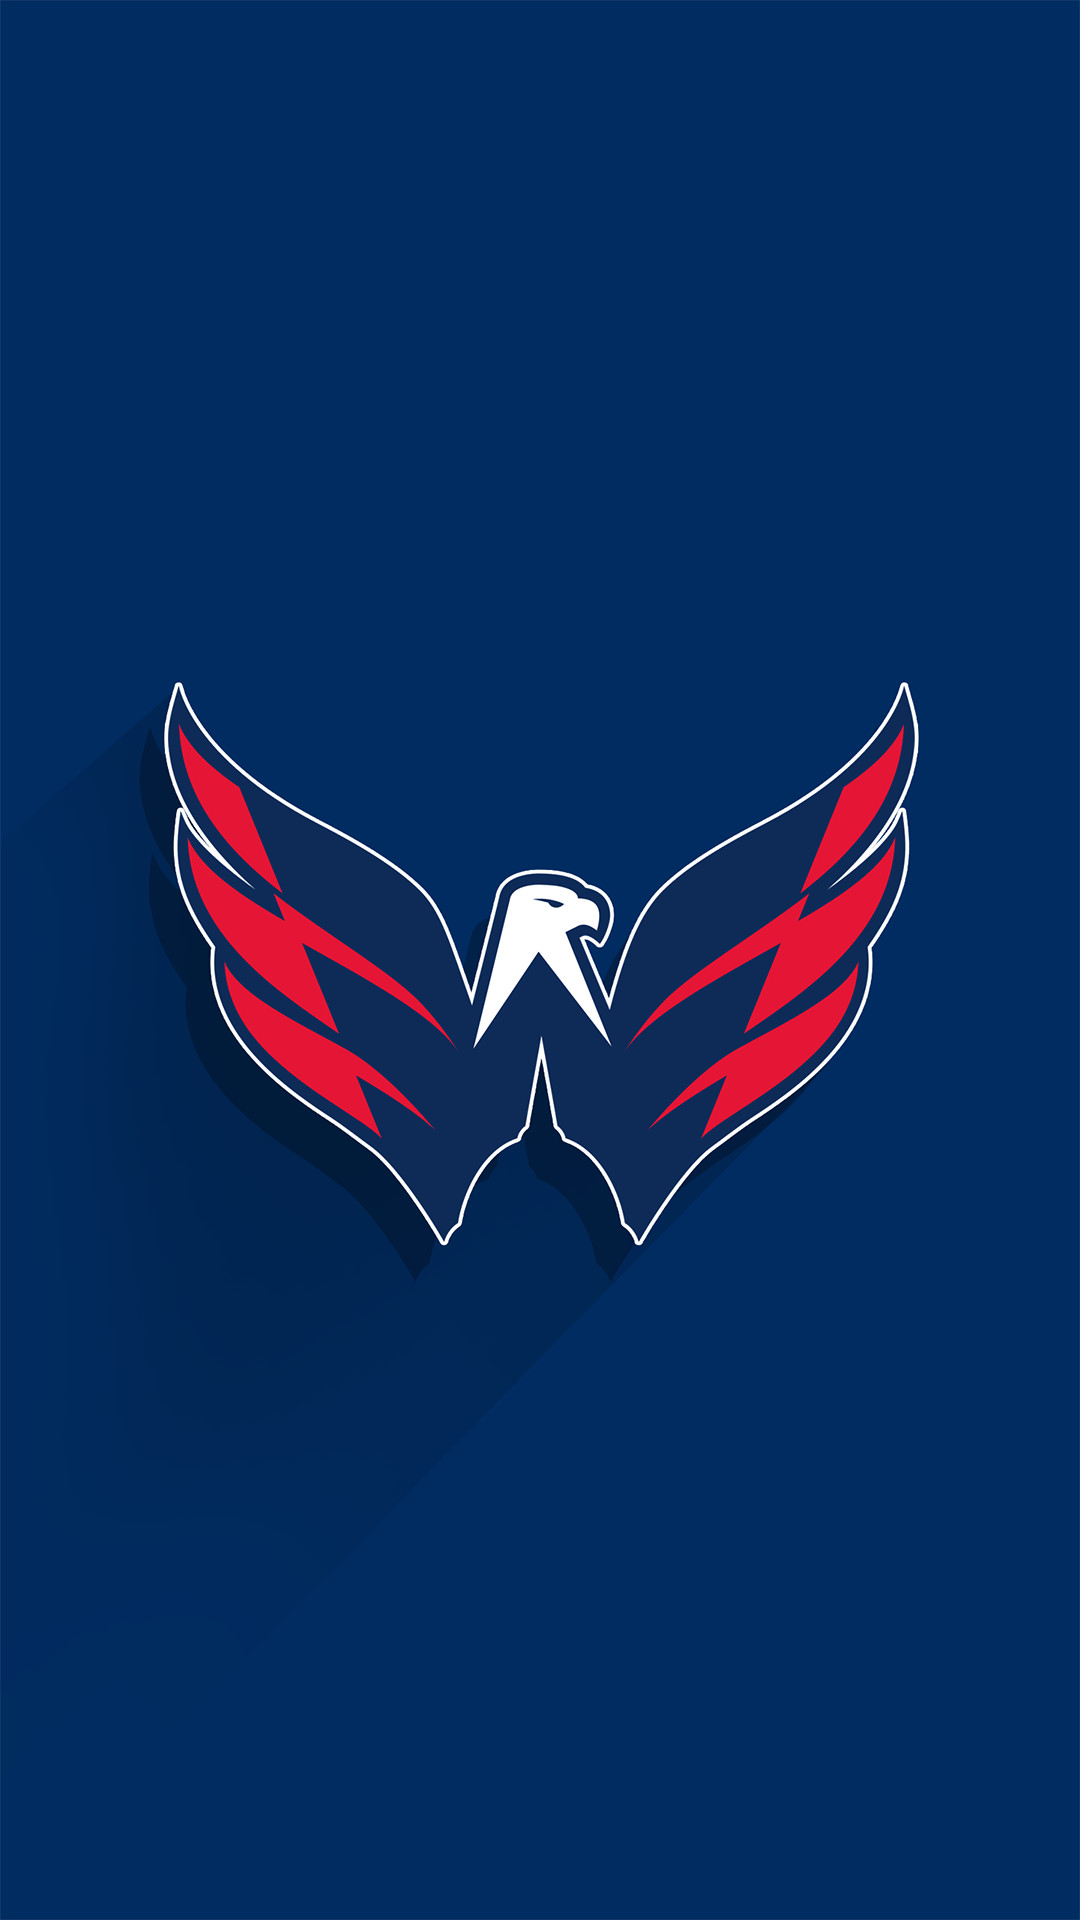 1080x1920 ... Washington Capitals Wallpapers iPhone 6S Plus by lirking20